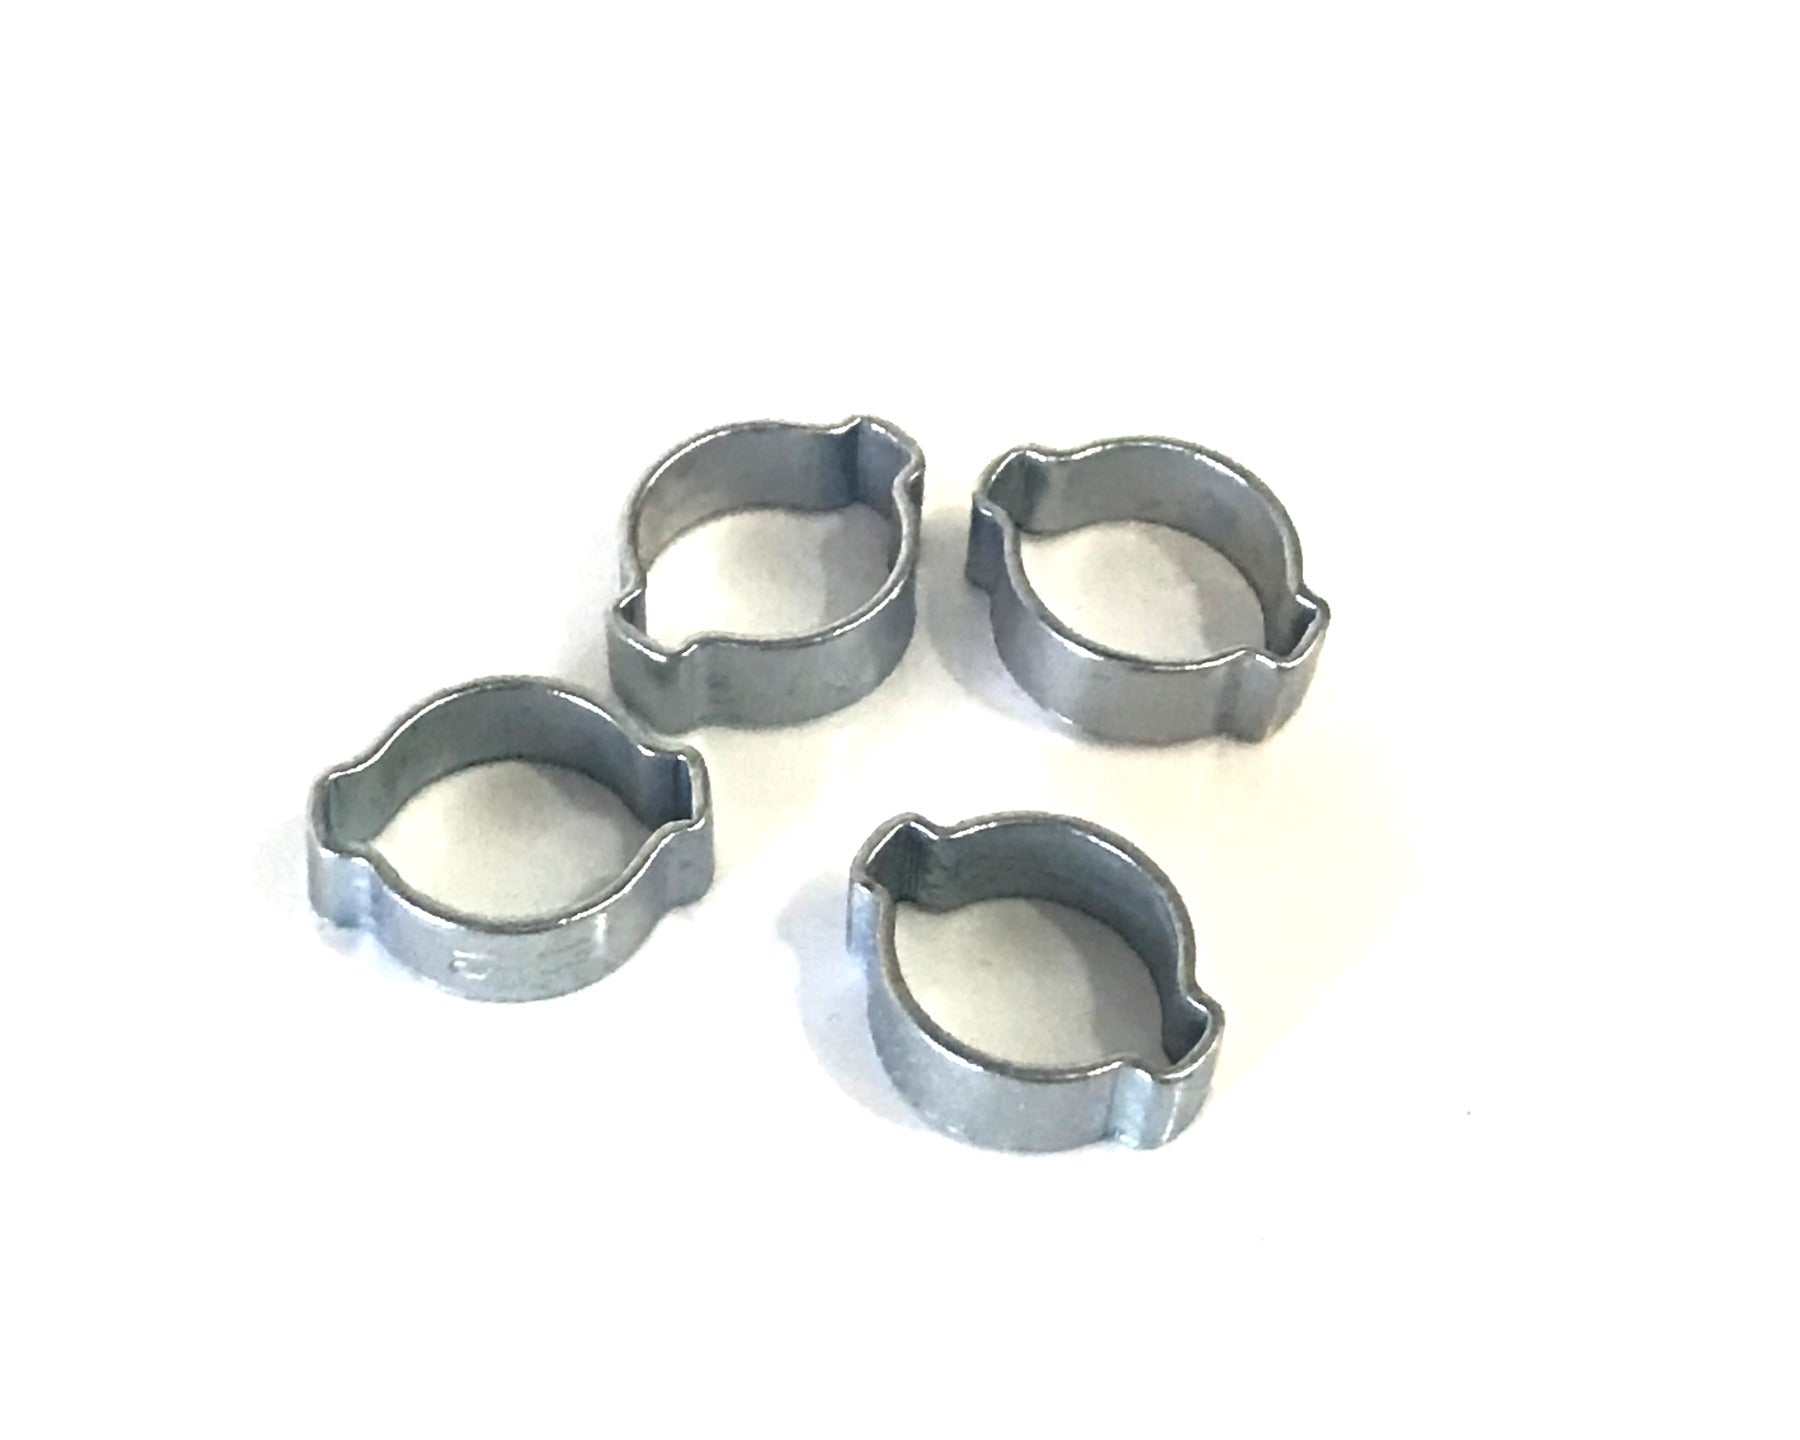 Oetiker Hose Clamp (13 x 15) 4 Pack